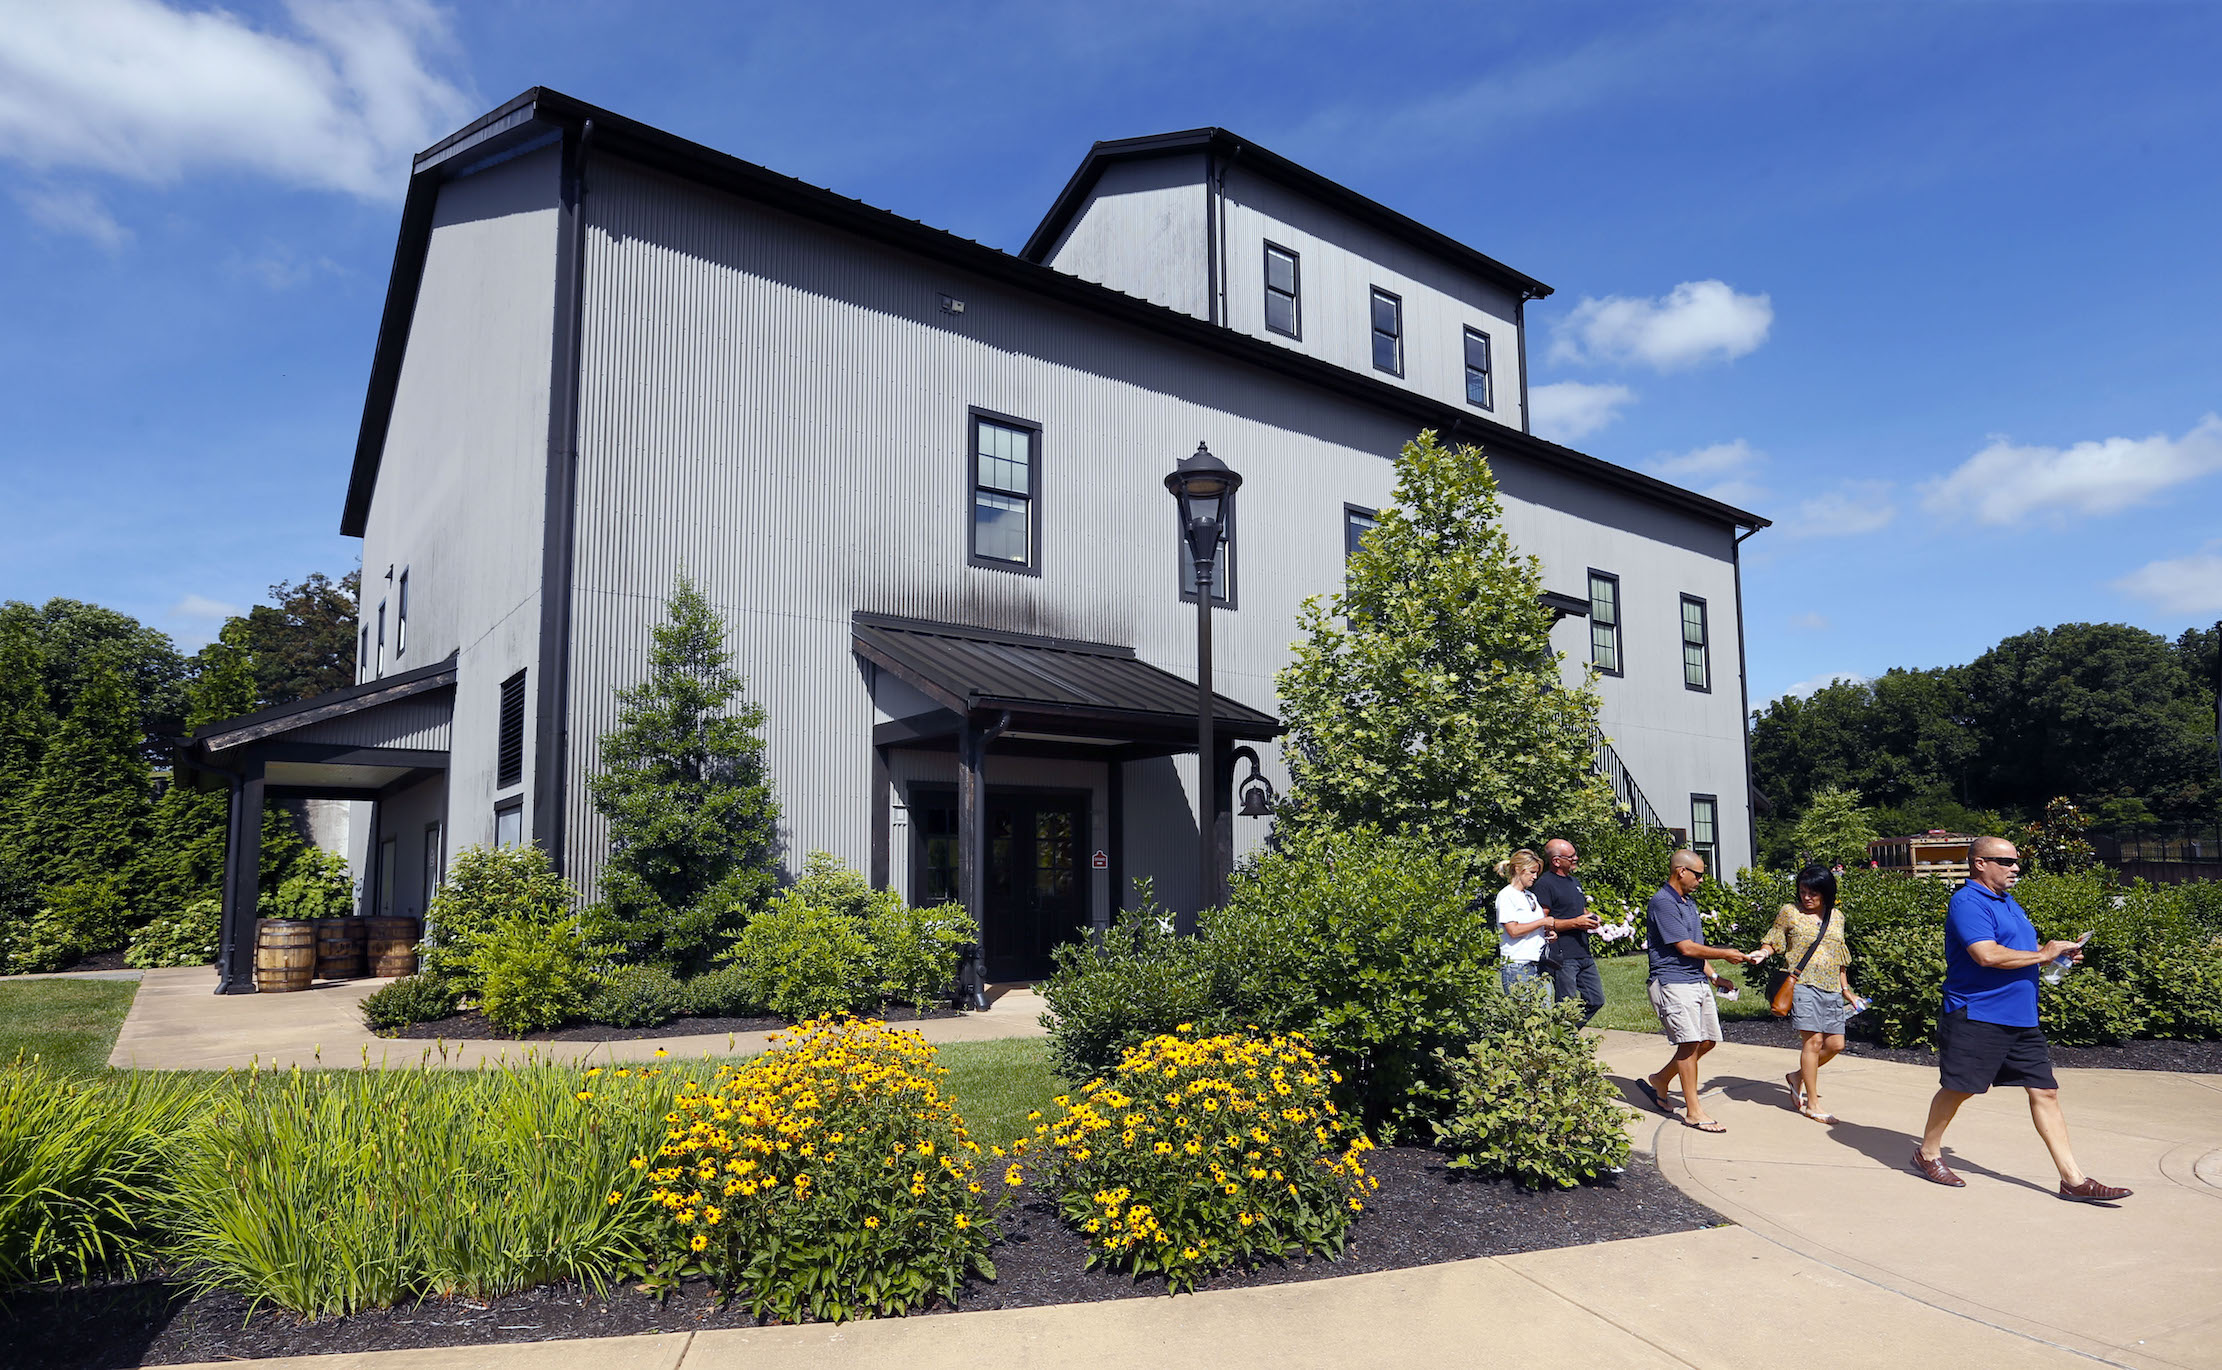 Jim Beam Distillery is a 30-minute drive south from Louisville and welcomes more than 200,000 visitors on an annual basis.